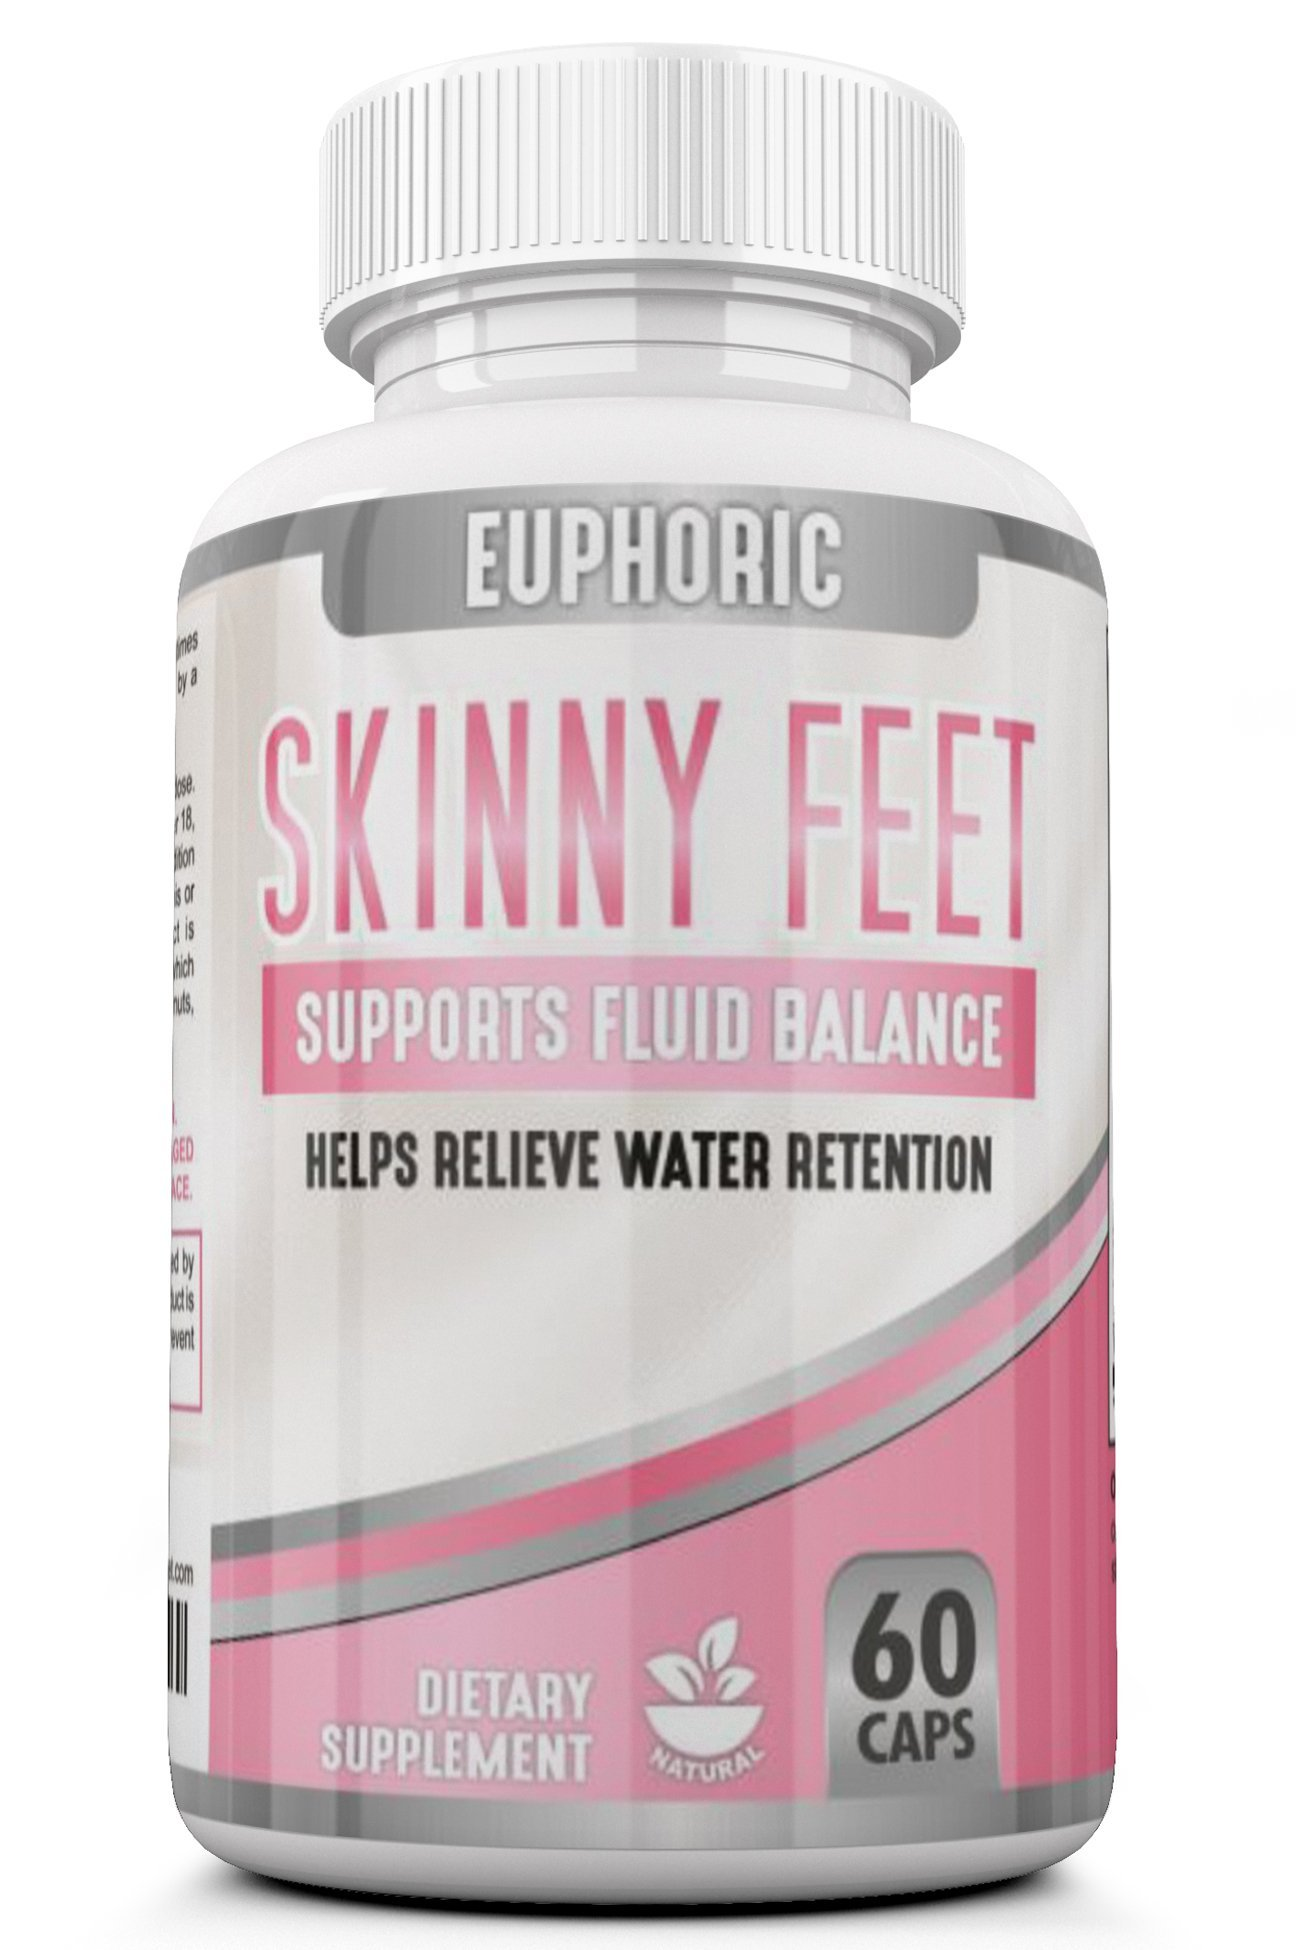 Skinny Feet: Edema Swollen Ankle Legs Supplement Reduces Swelling Bloating Natural Water Pill Diuretic Helps Relieve Achy Swelling on The Legs Feet Calves Hands, Water Retention, Promotes Weight Loss by SKINNY FEET